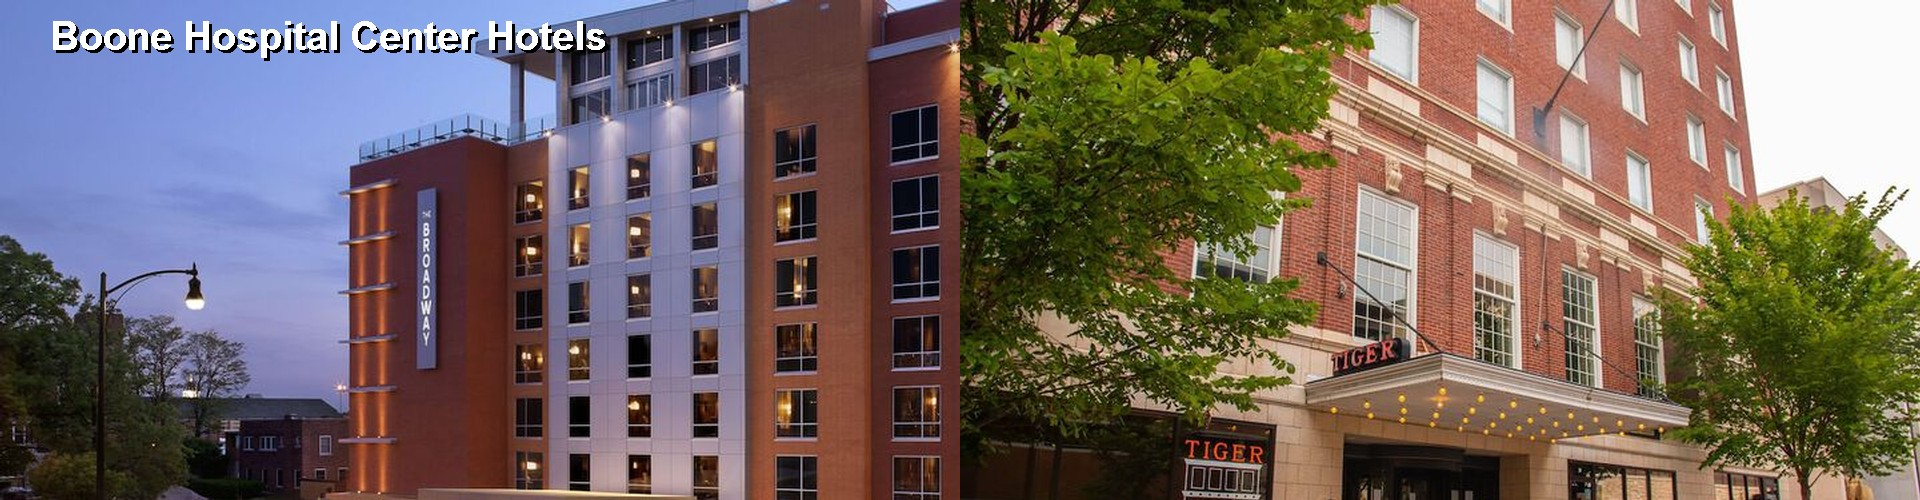 5 Best Hotels near Boone Hospital Center